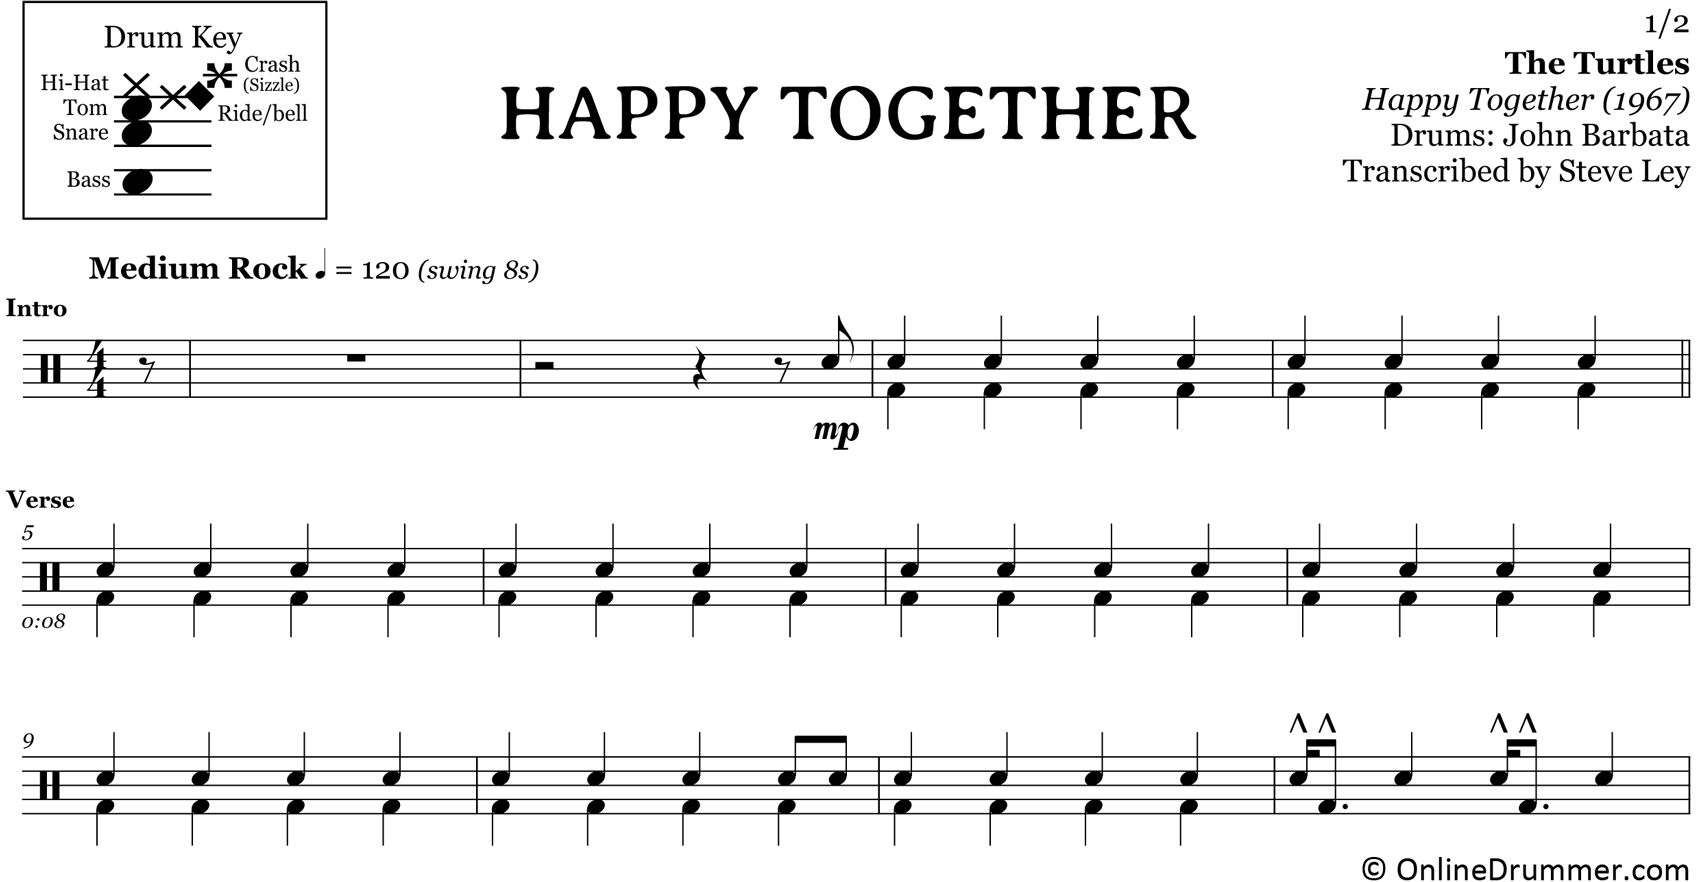 Happy Together - The Turtles - Drum Sheet Music